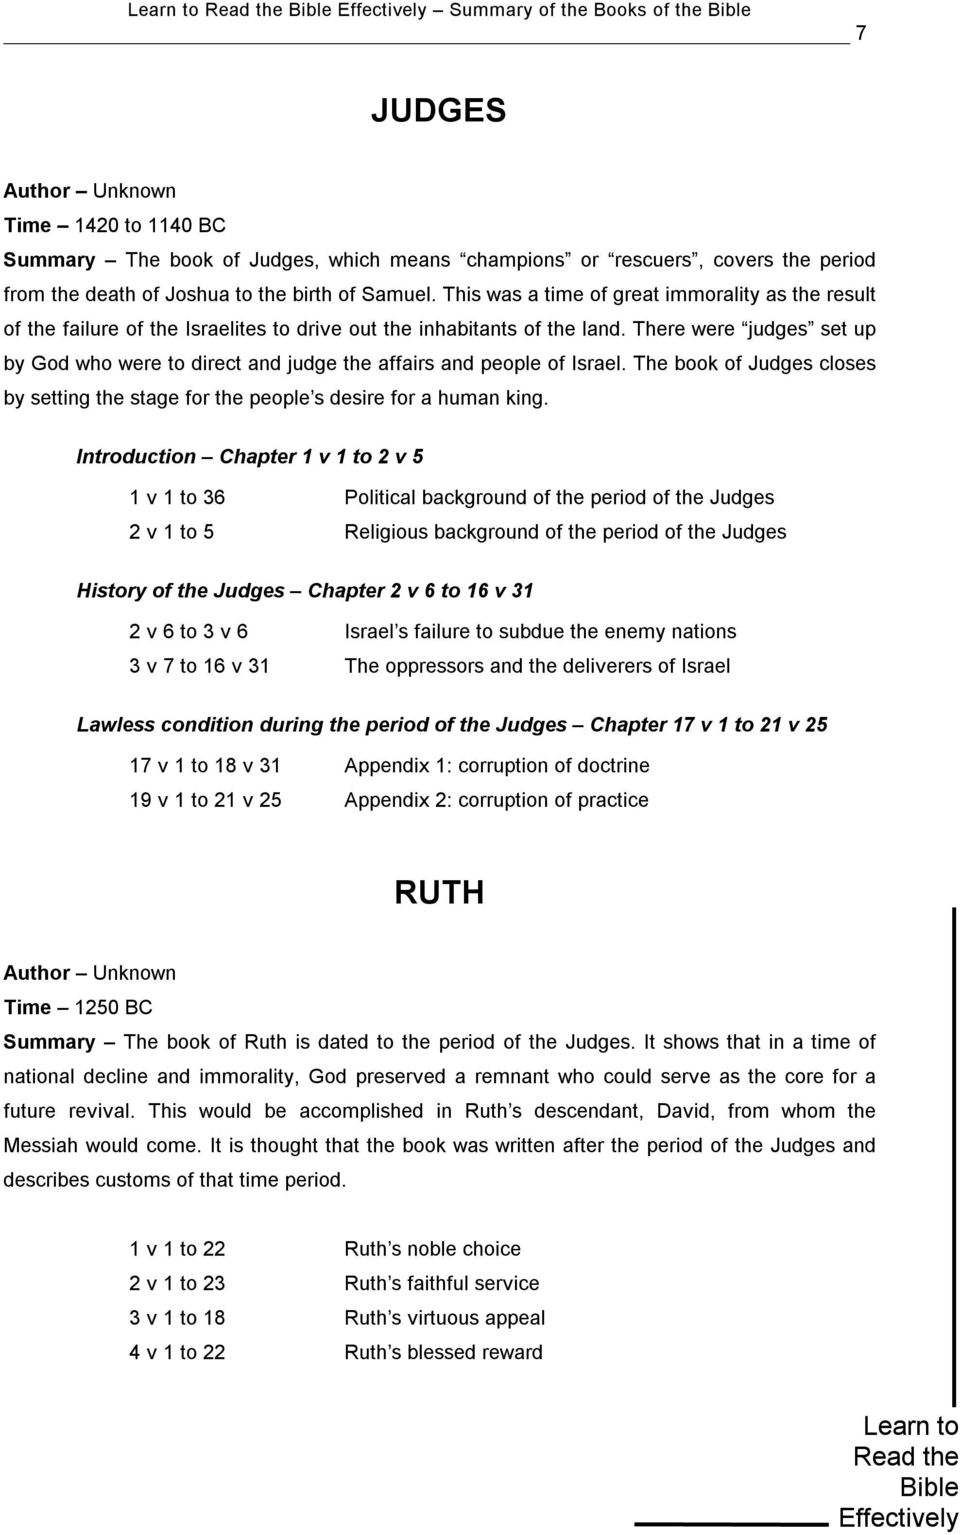 Learn to Read the Bible Effectively Summary of the Books of